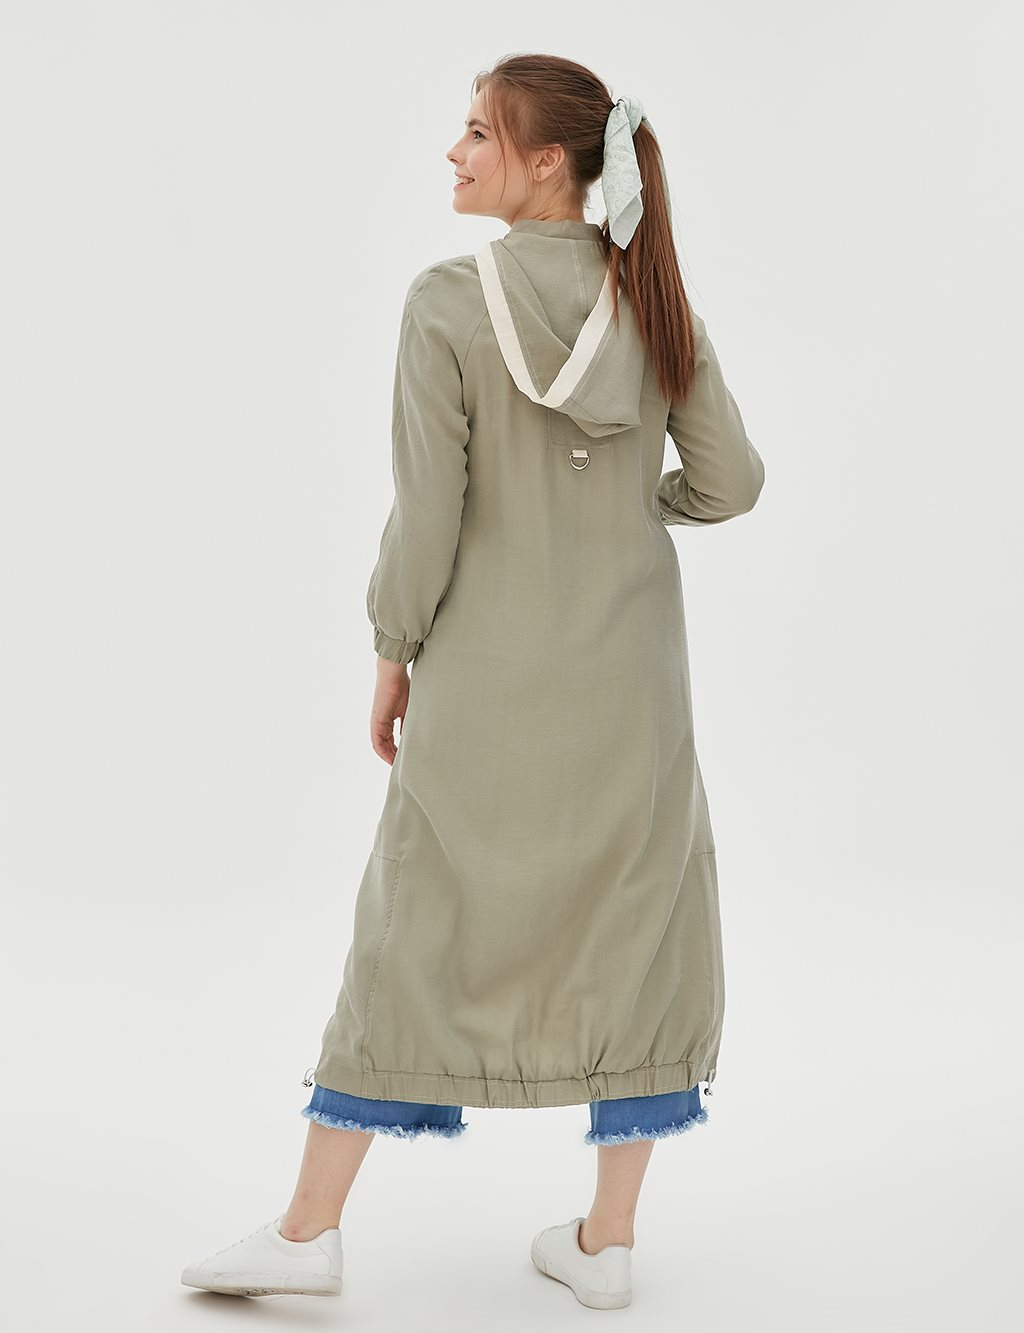 Ruched Coat With Hood B20 25007 Water Green